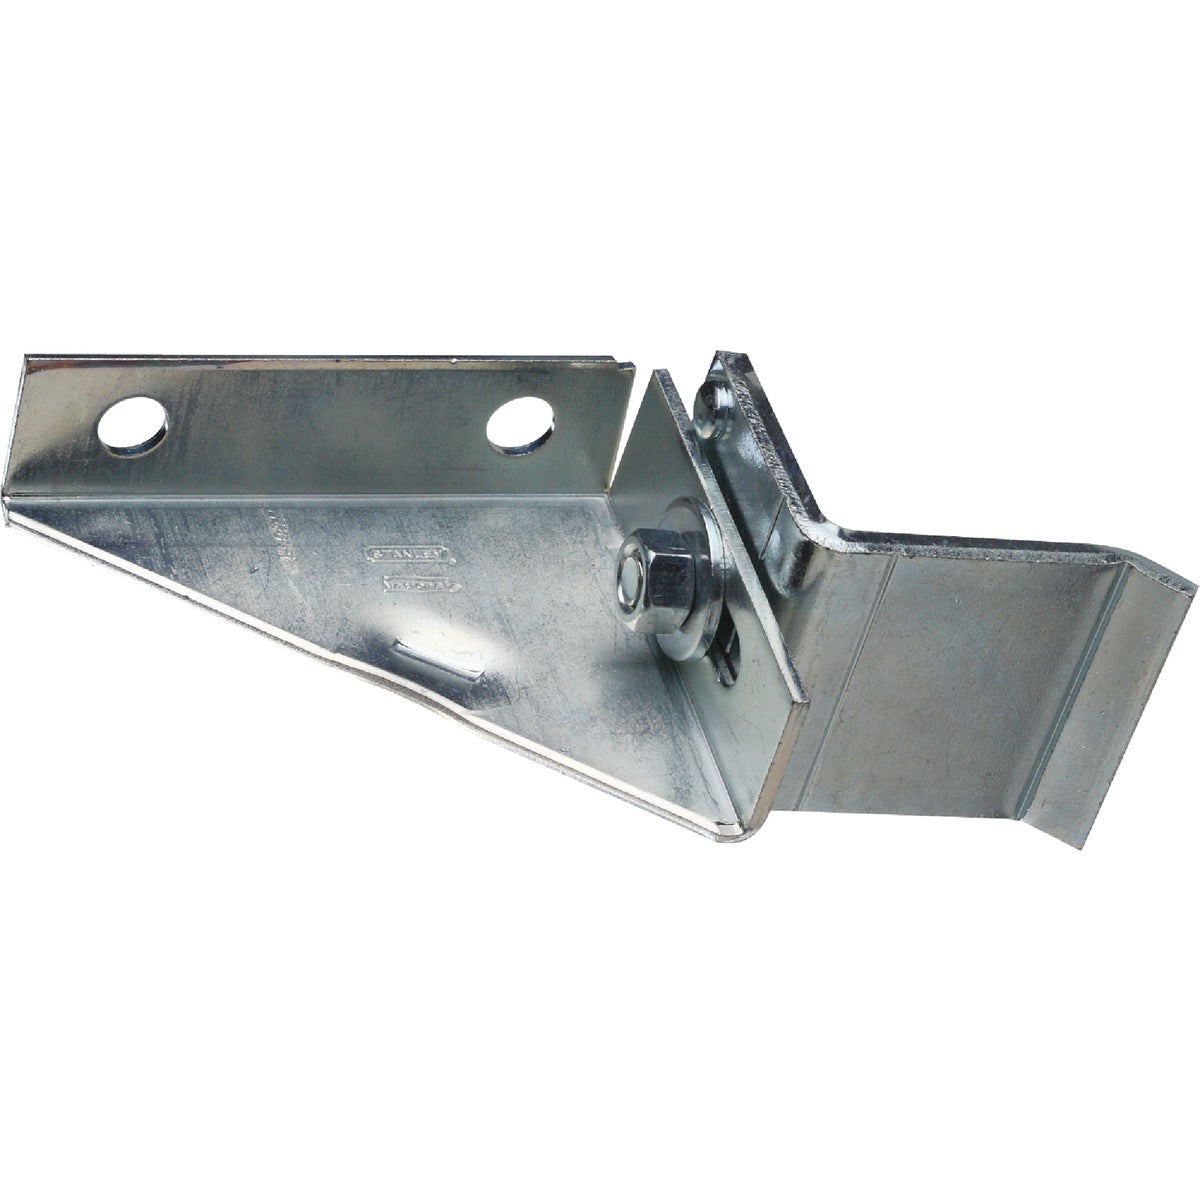 ZINC ADJ DOOR BUMPER - N131458 by National Mfg Co